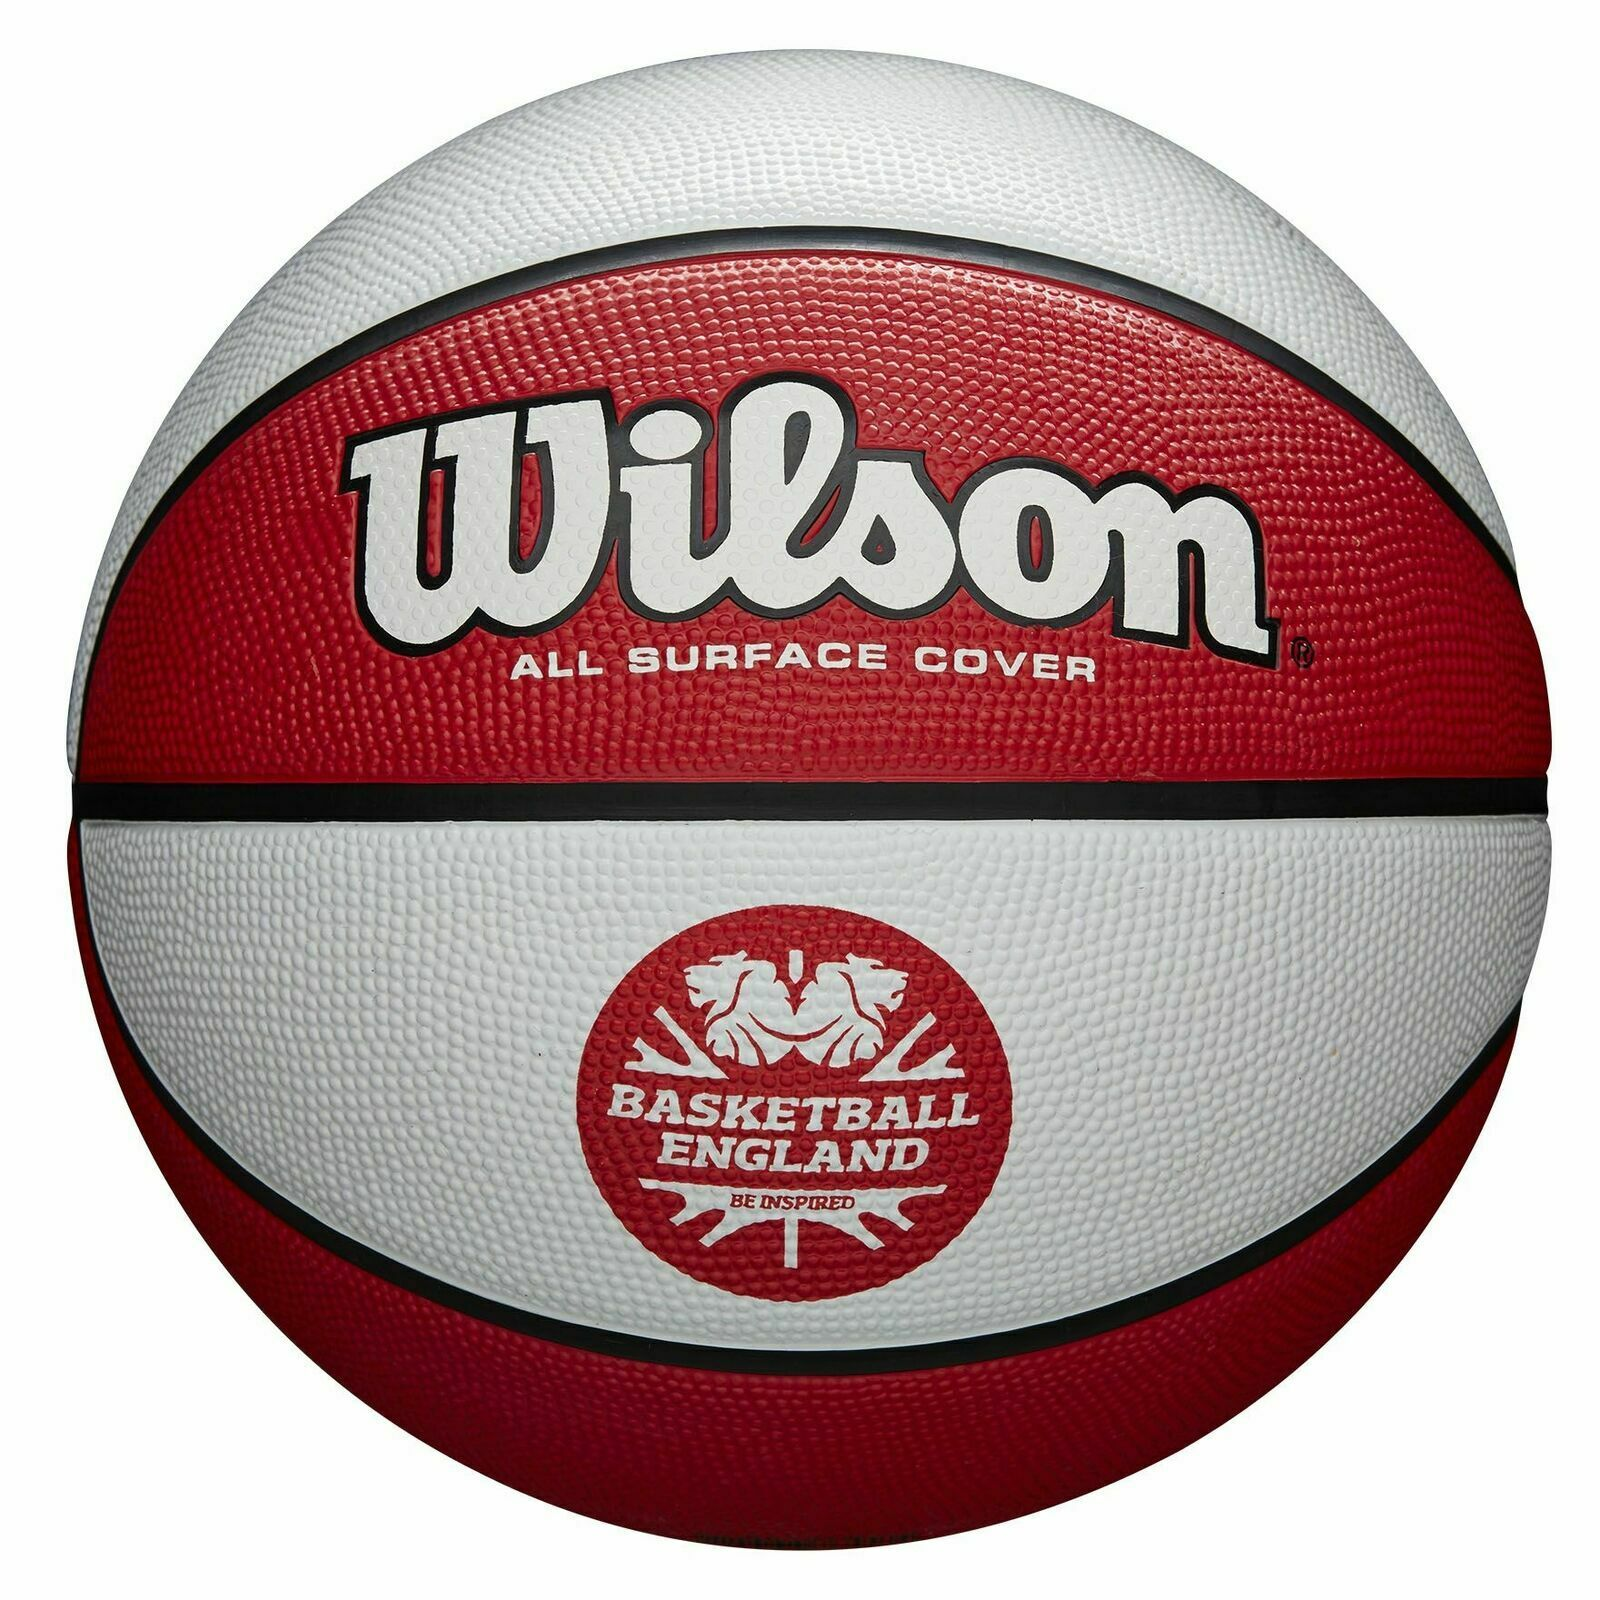 Basketball England Wilson Clutch Basketball - Package of 10 Balls, Size 7